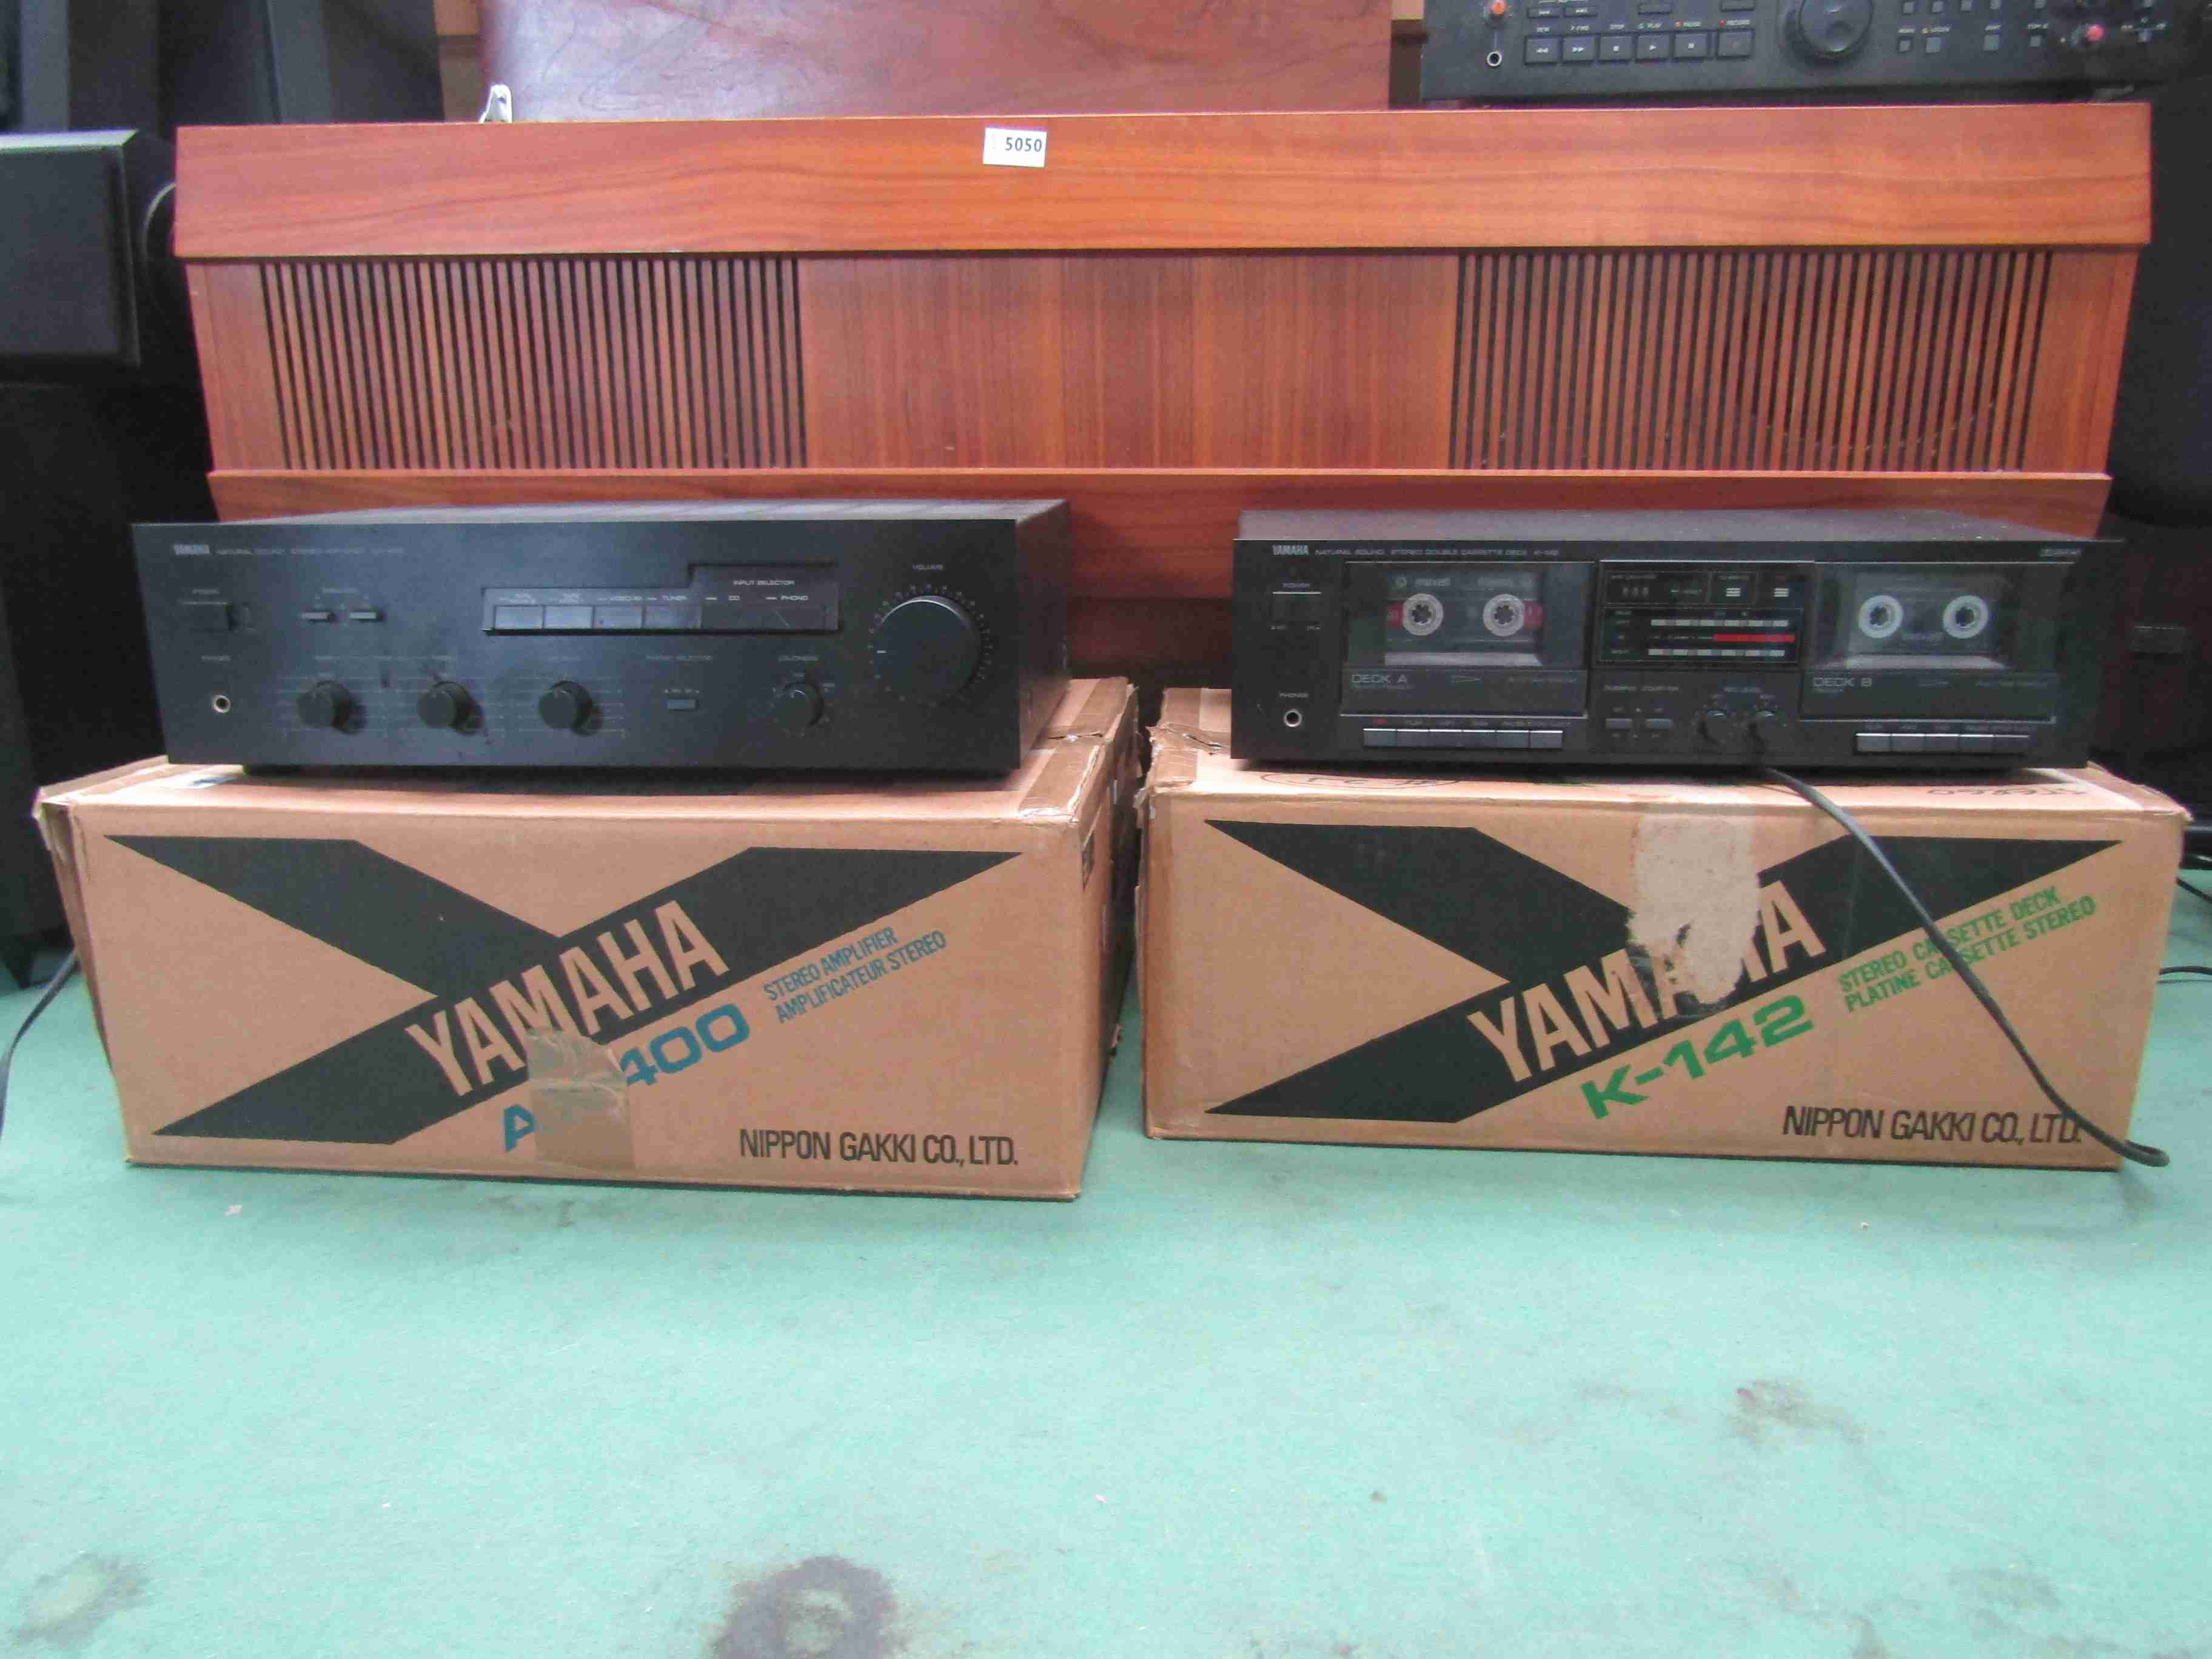 A boxed Yamaha AX-400 amplifier and K-142 cassette deck (2)